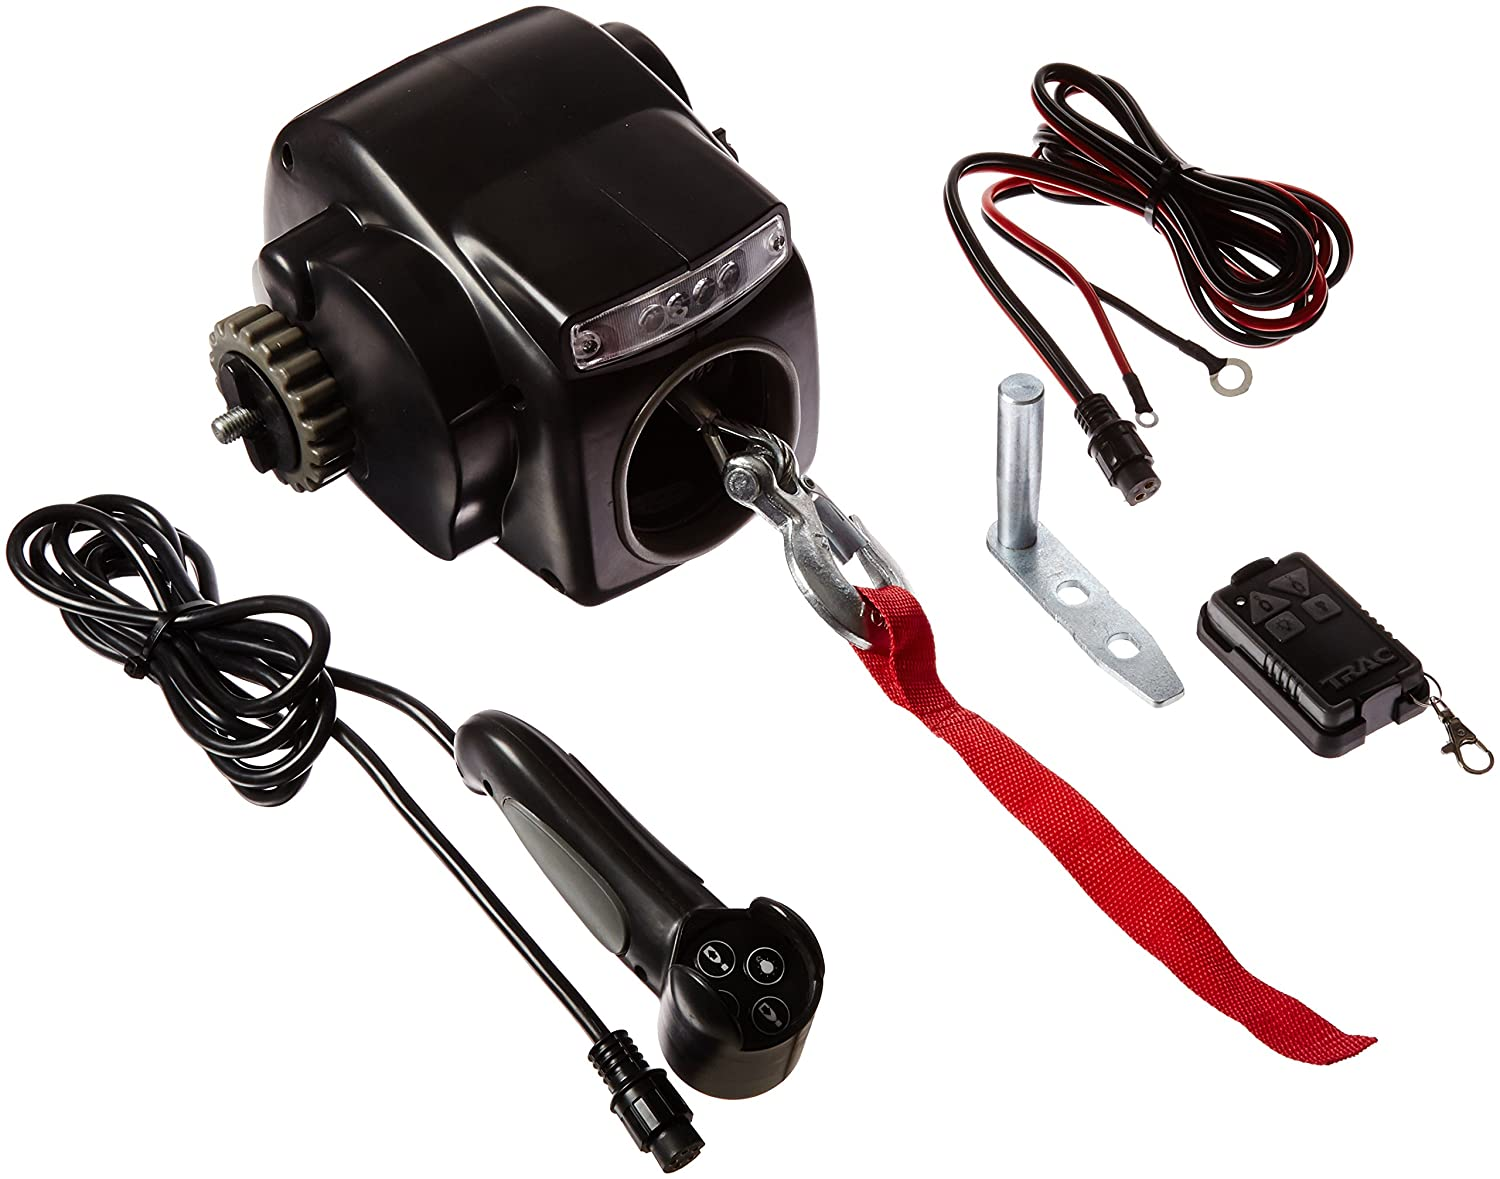 Trac Outdoor T10124 TW Series Electric Trailer Winch TRAC Outdoor Products 3026032